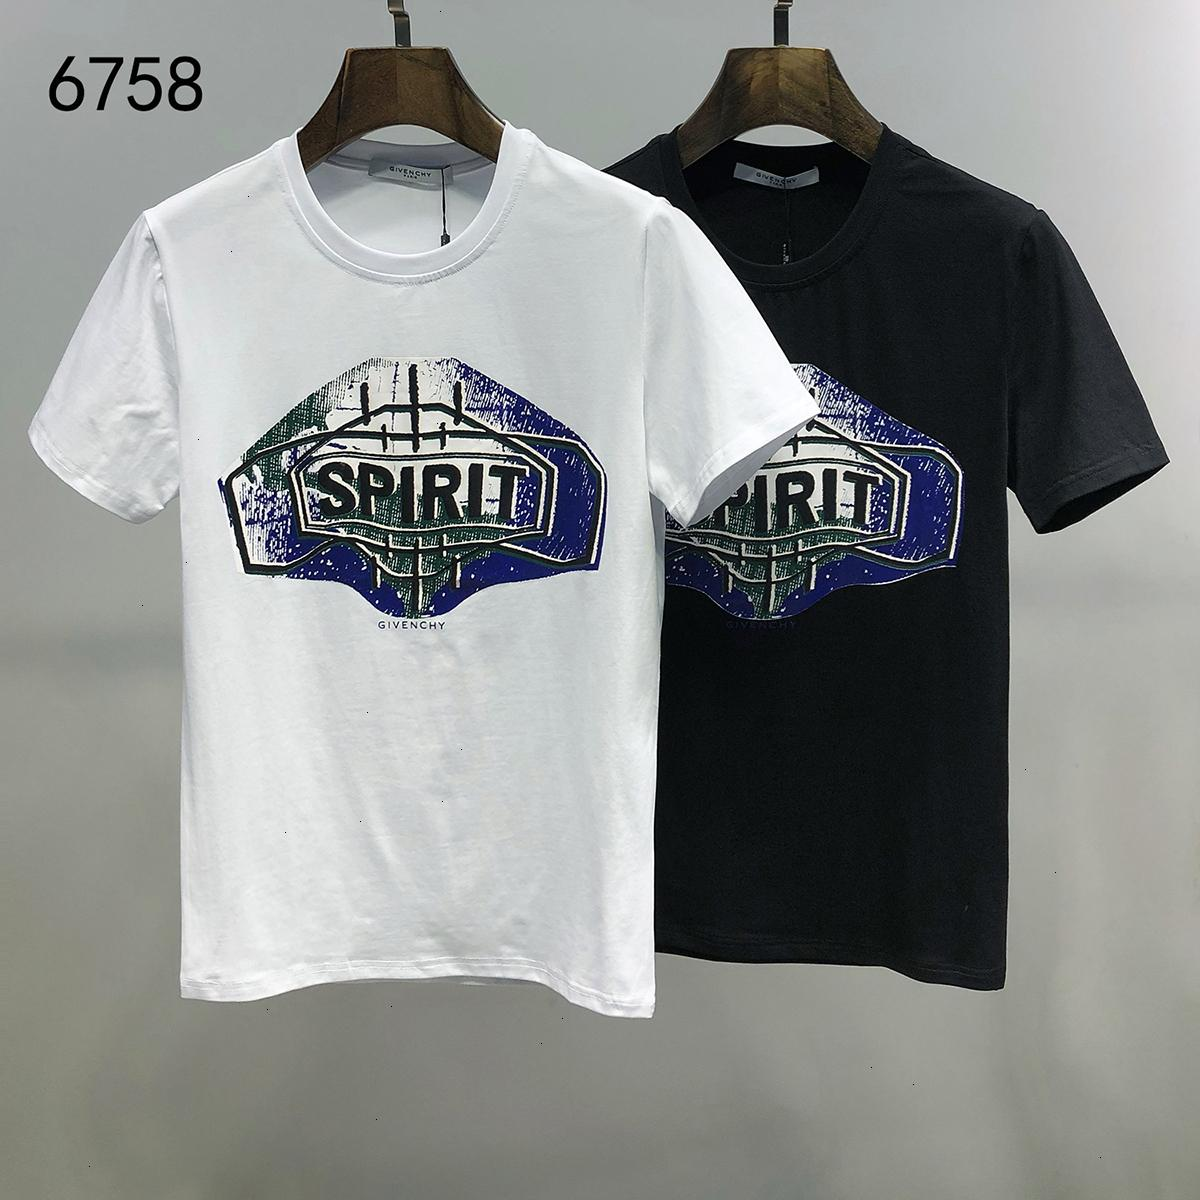 T-shirt homme taille mode casual tendance M-3XL confortable WSJ014 respirant # 111571 kaiyi522